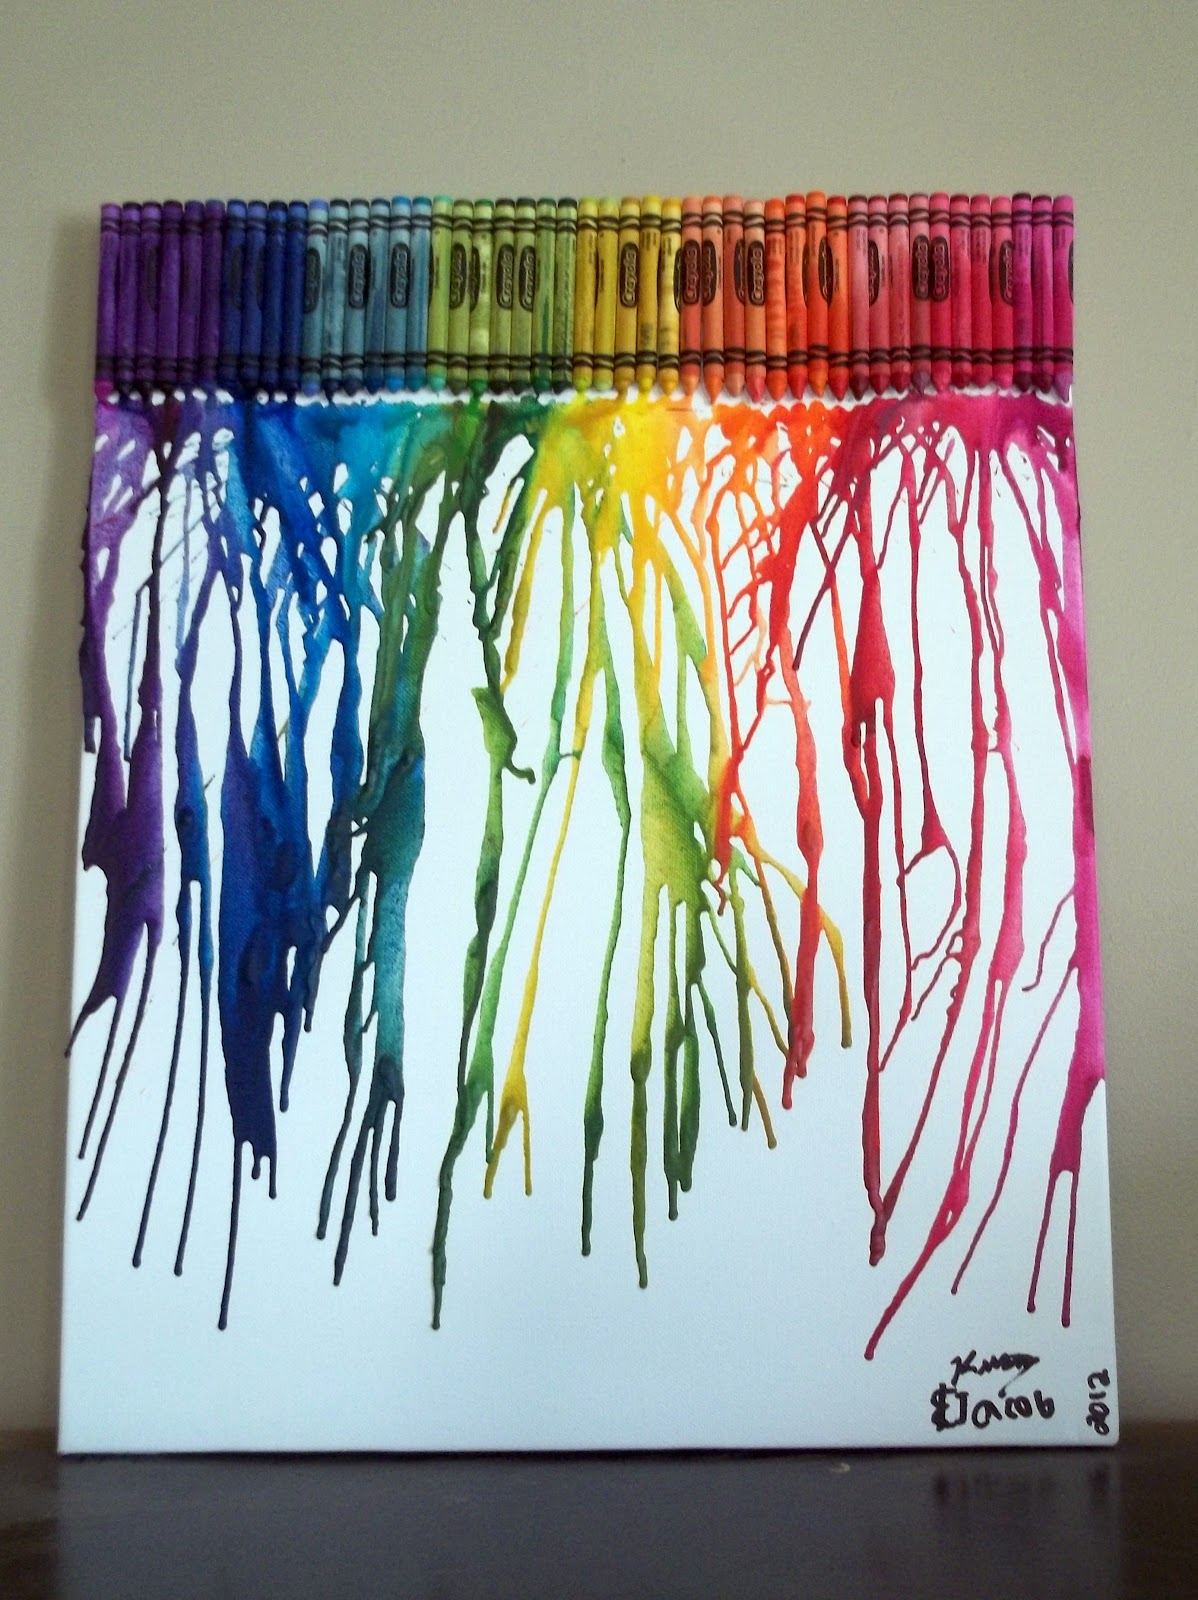 Sliding Down The Stairs Melted Crayon Art